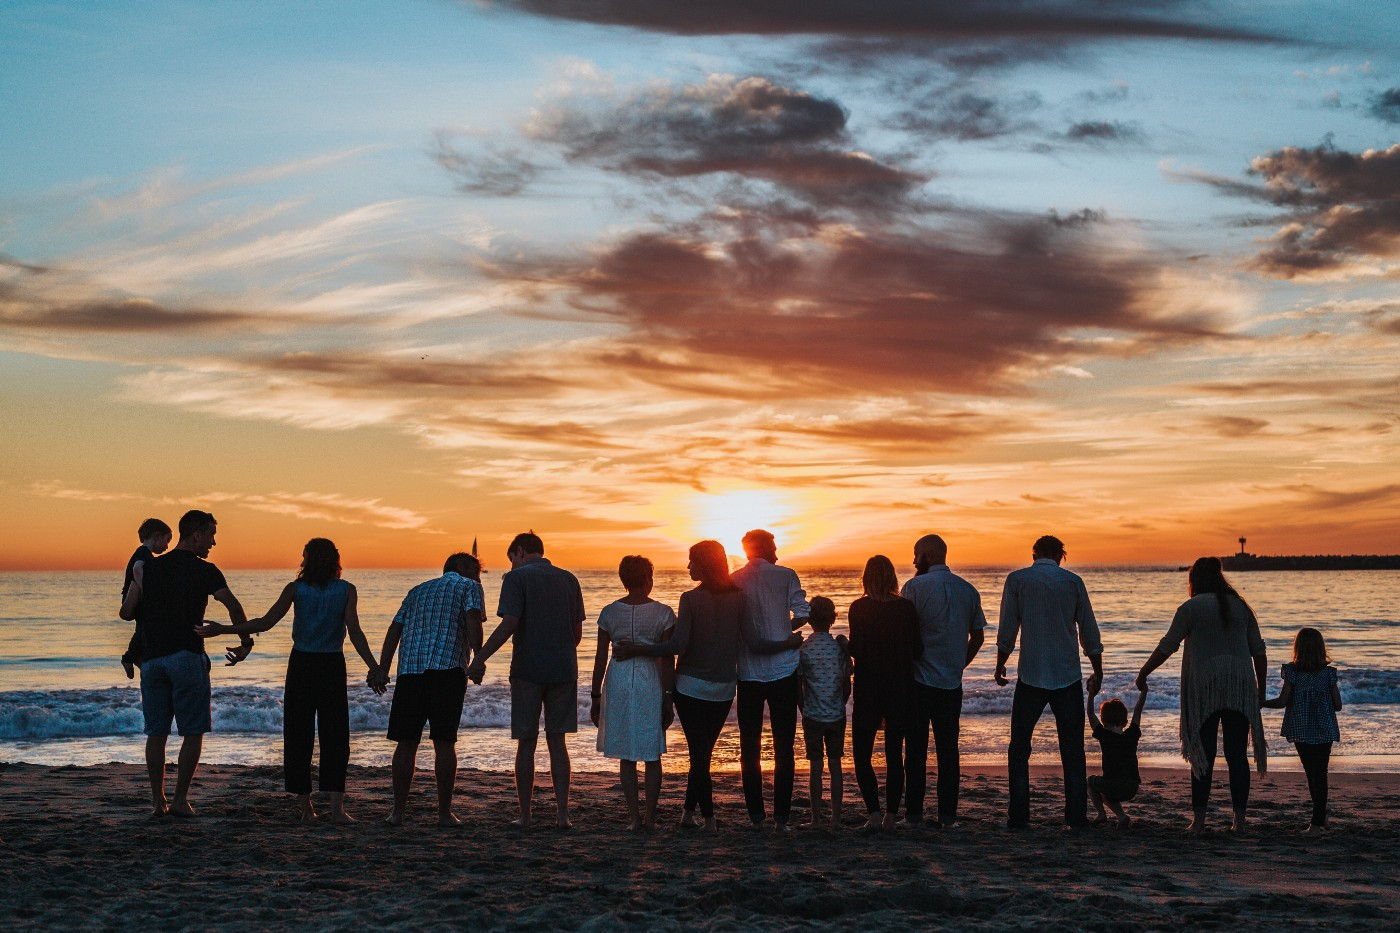 Family and friends on the beach at sunset before COVID-19.